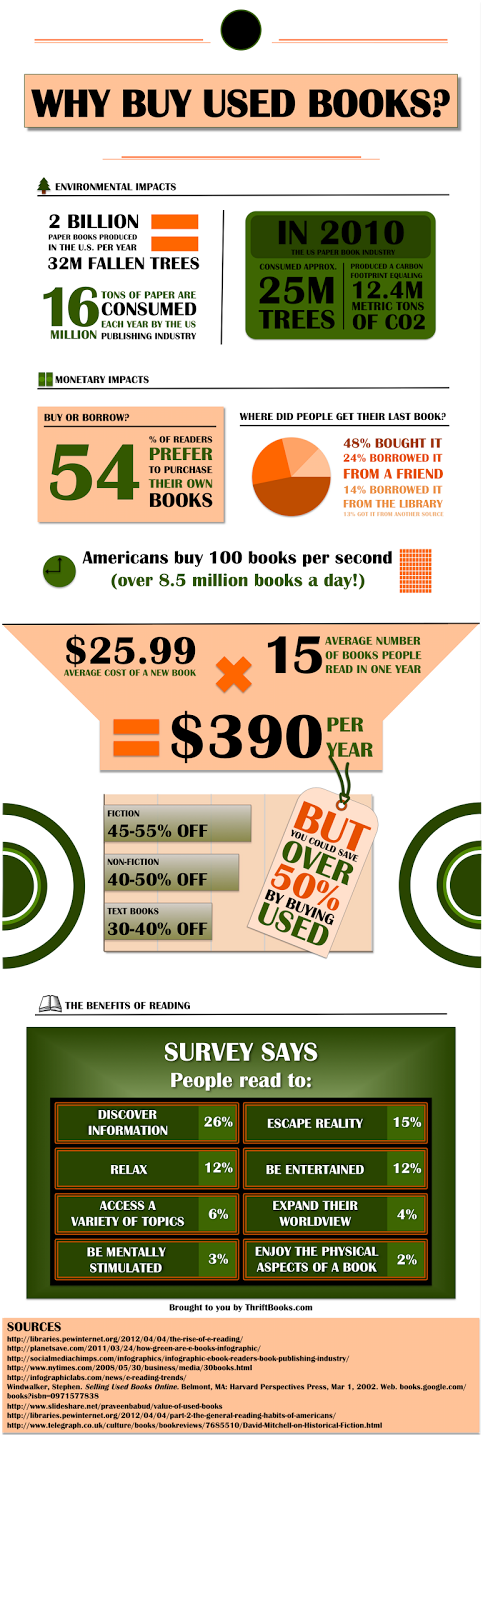 Why+Buy+Used+Books+-+TB+-+graphic.png